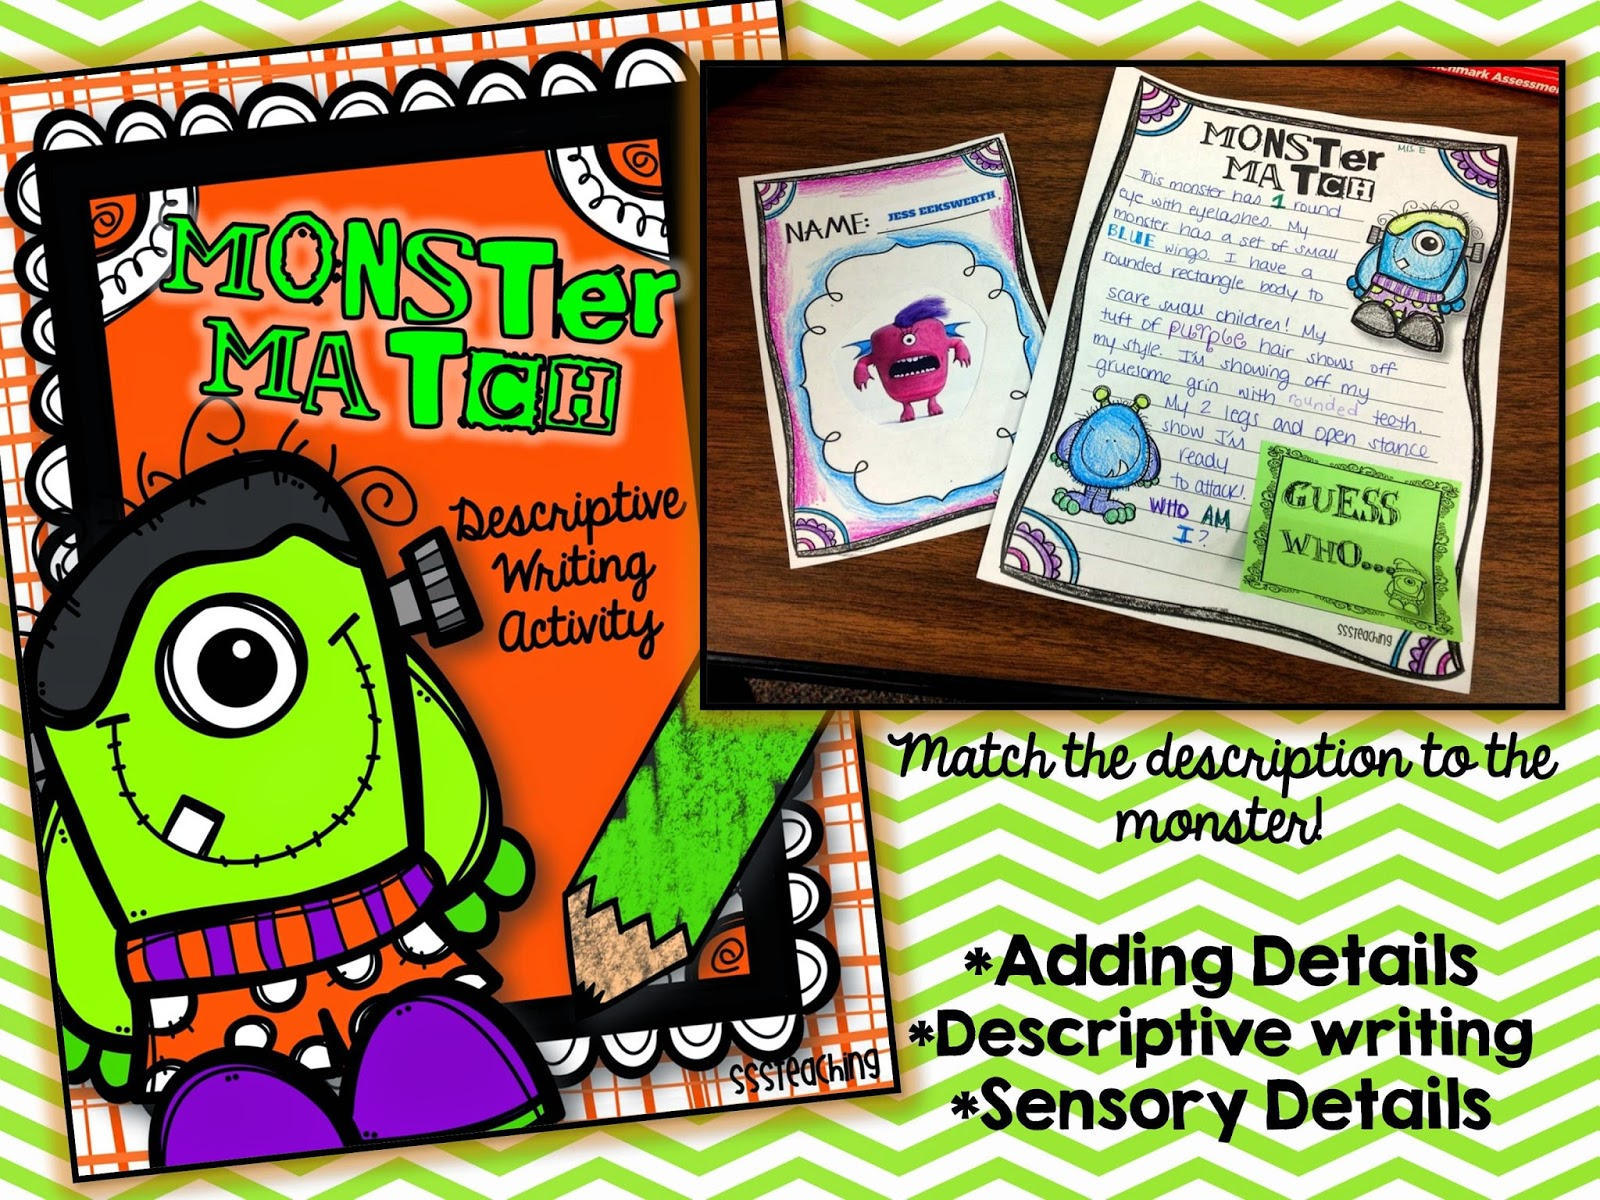 descriptive writing monster match sssteaching the monster pages and writing templates are all included along a rubric directions and monster templates if you don t want to use the website